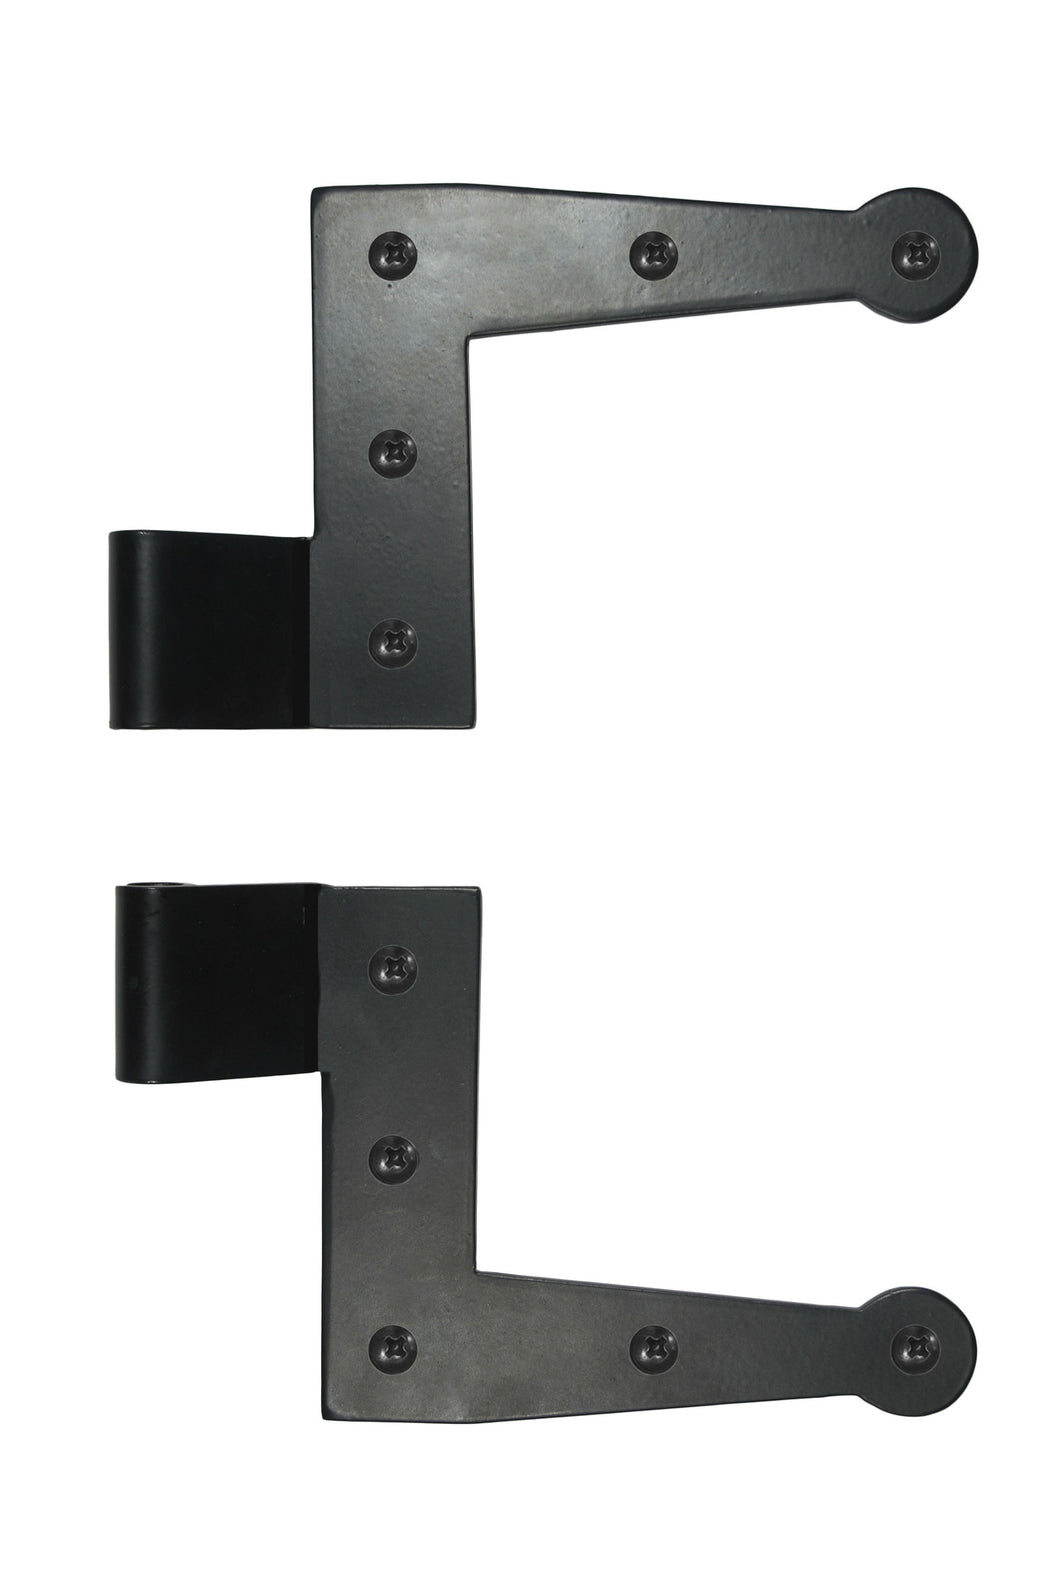 Suffolk Style L Hinge - 1/2'' Offset | Hardware